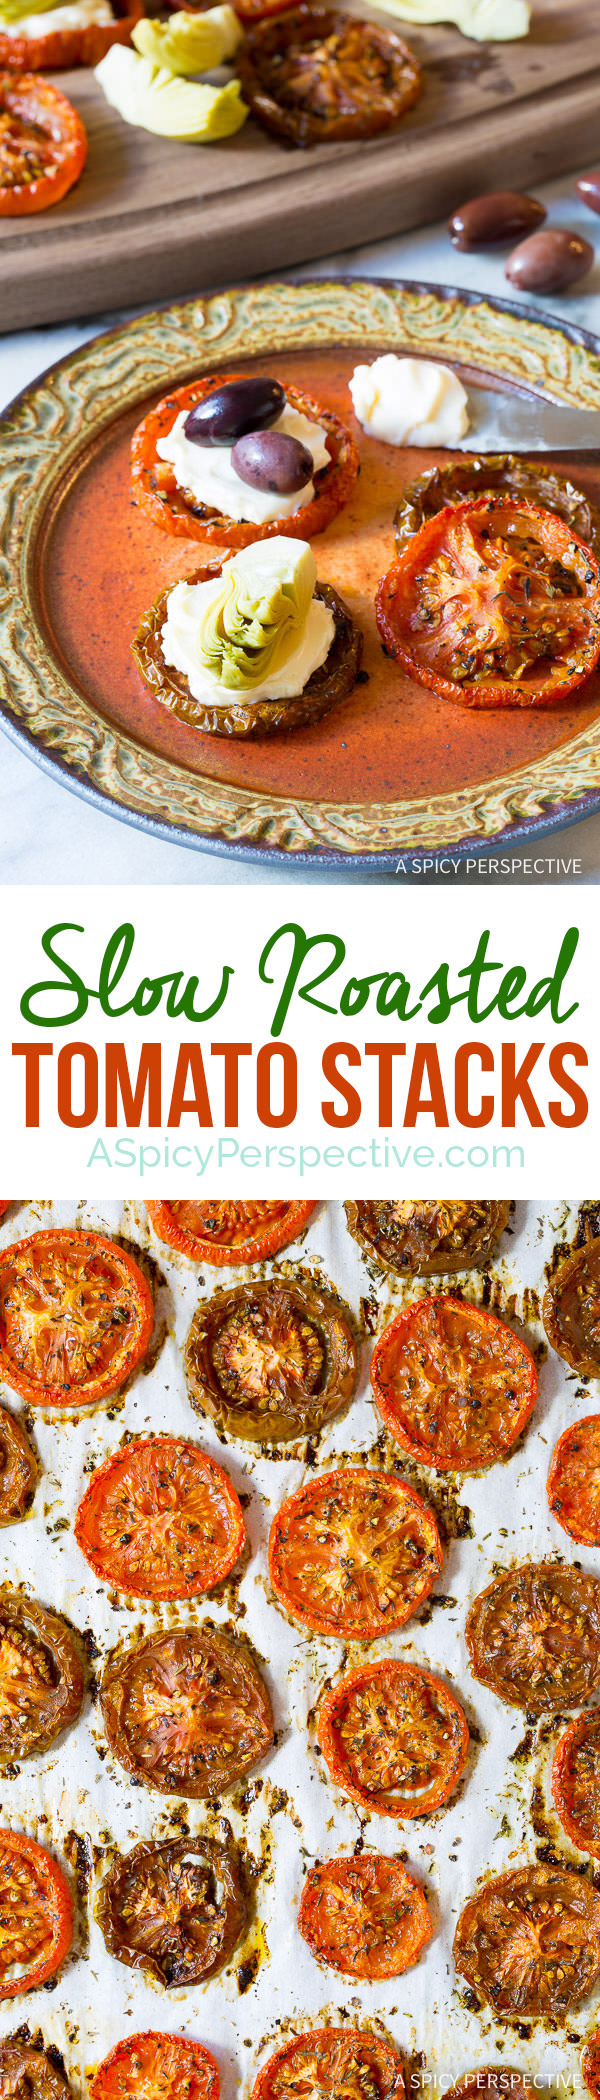 Dazzling Oven Roasted Tomato Stack Snacks   ASpicyPerspective.com